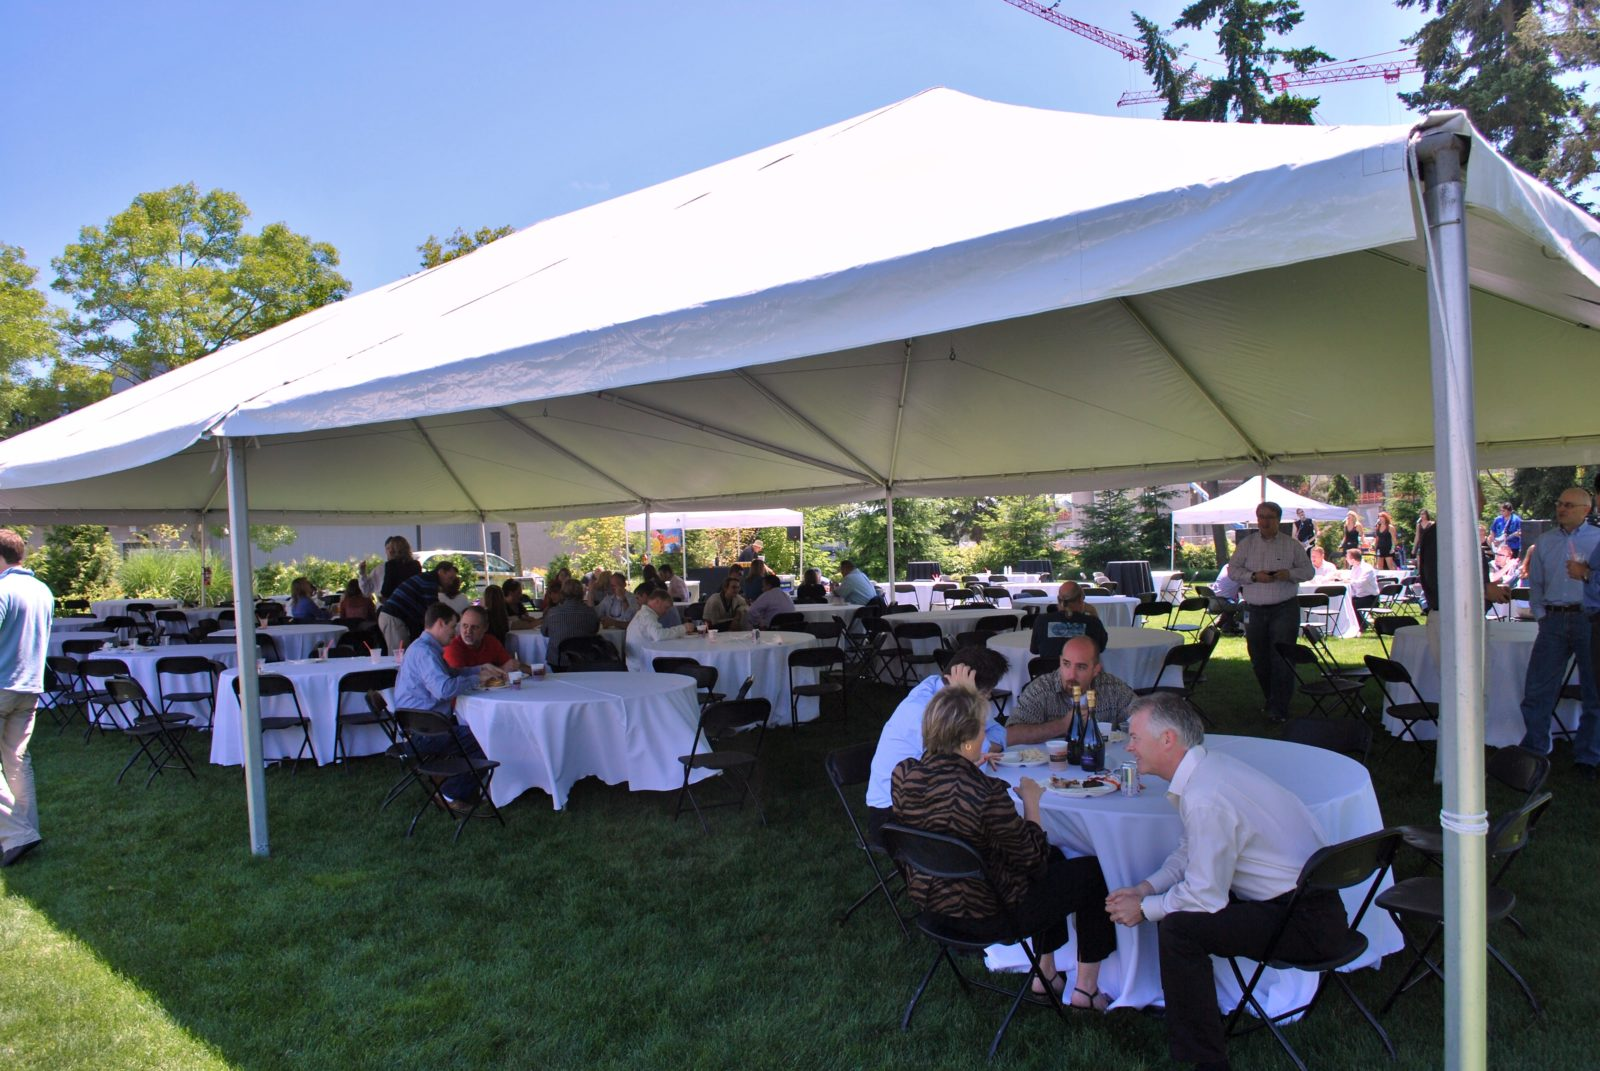 Tent And Chair Rentals Large Tent Rental With Optional Heating And Interior Decor